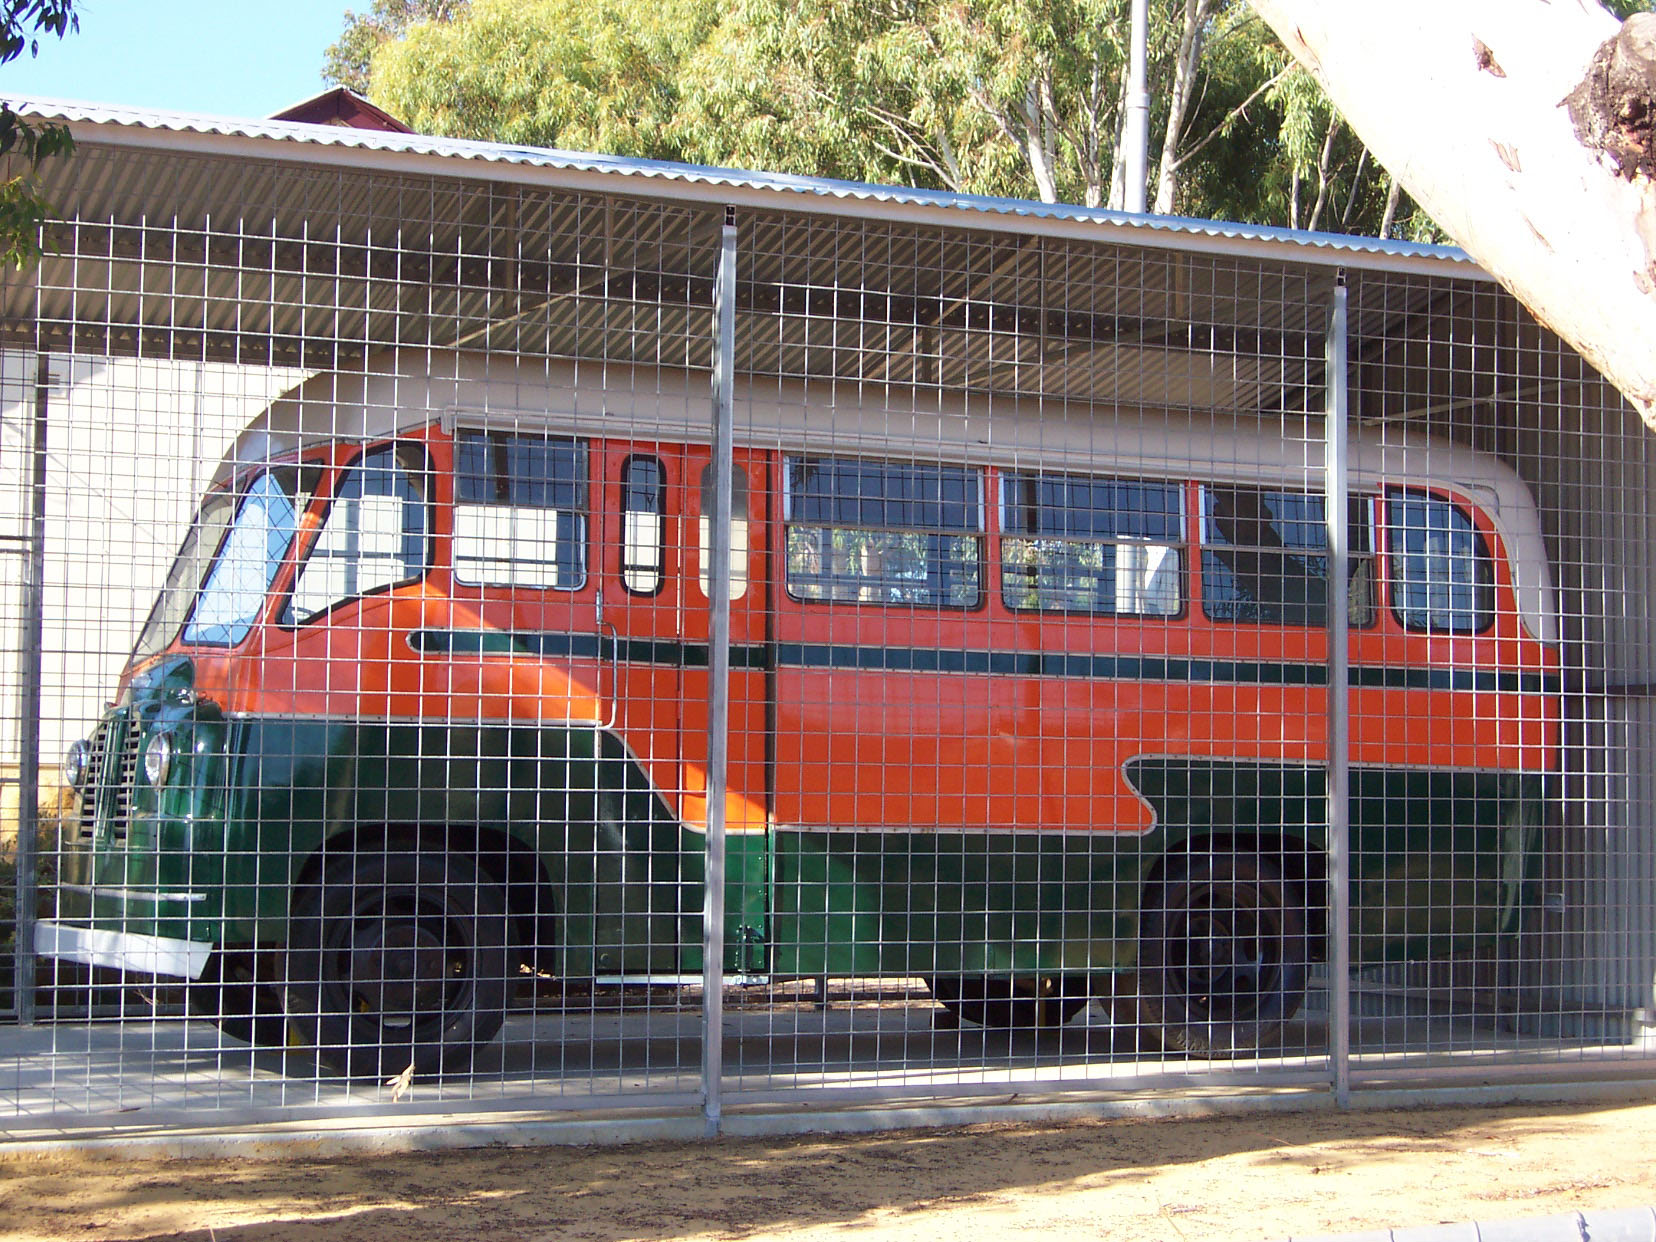 Old school bus at the Goomalling Museum, Western Australia